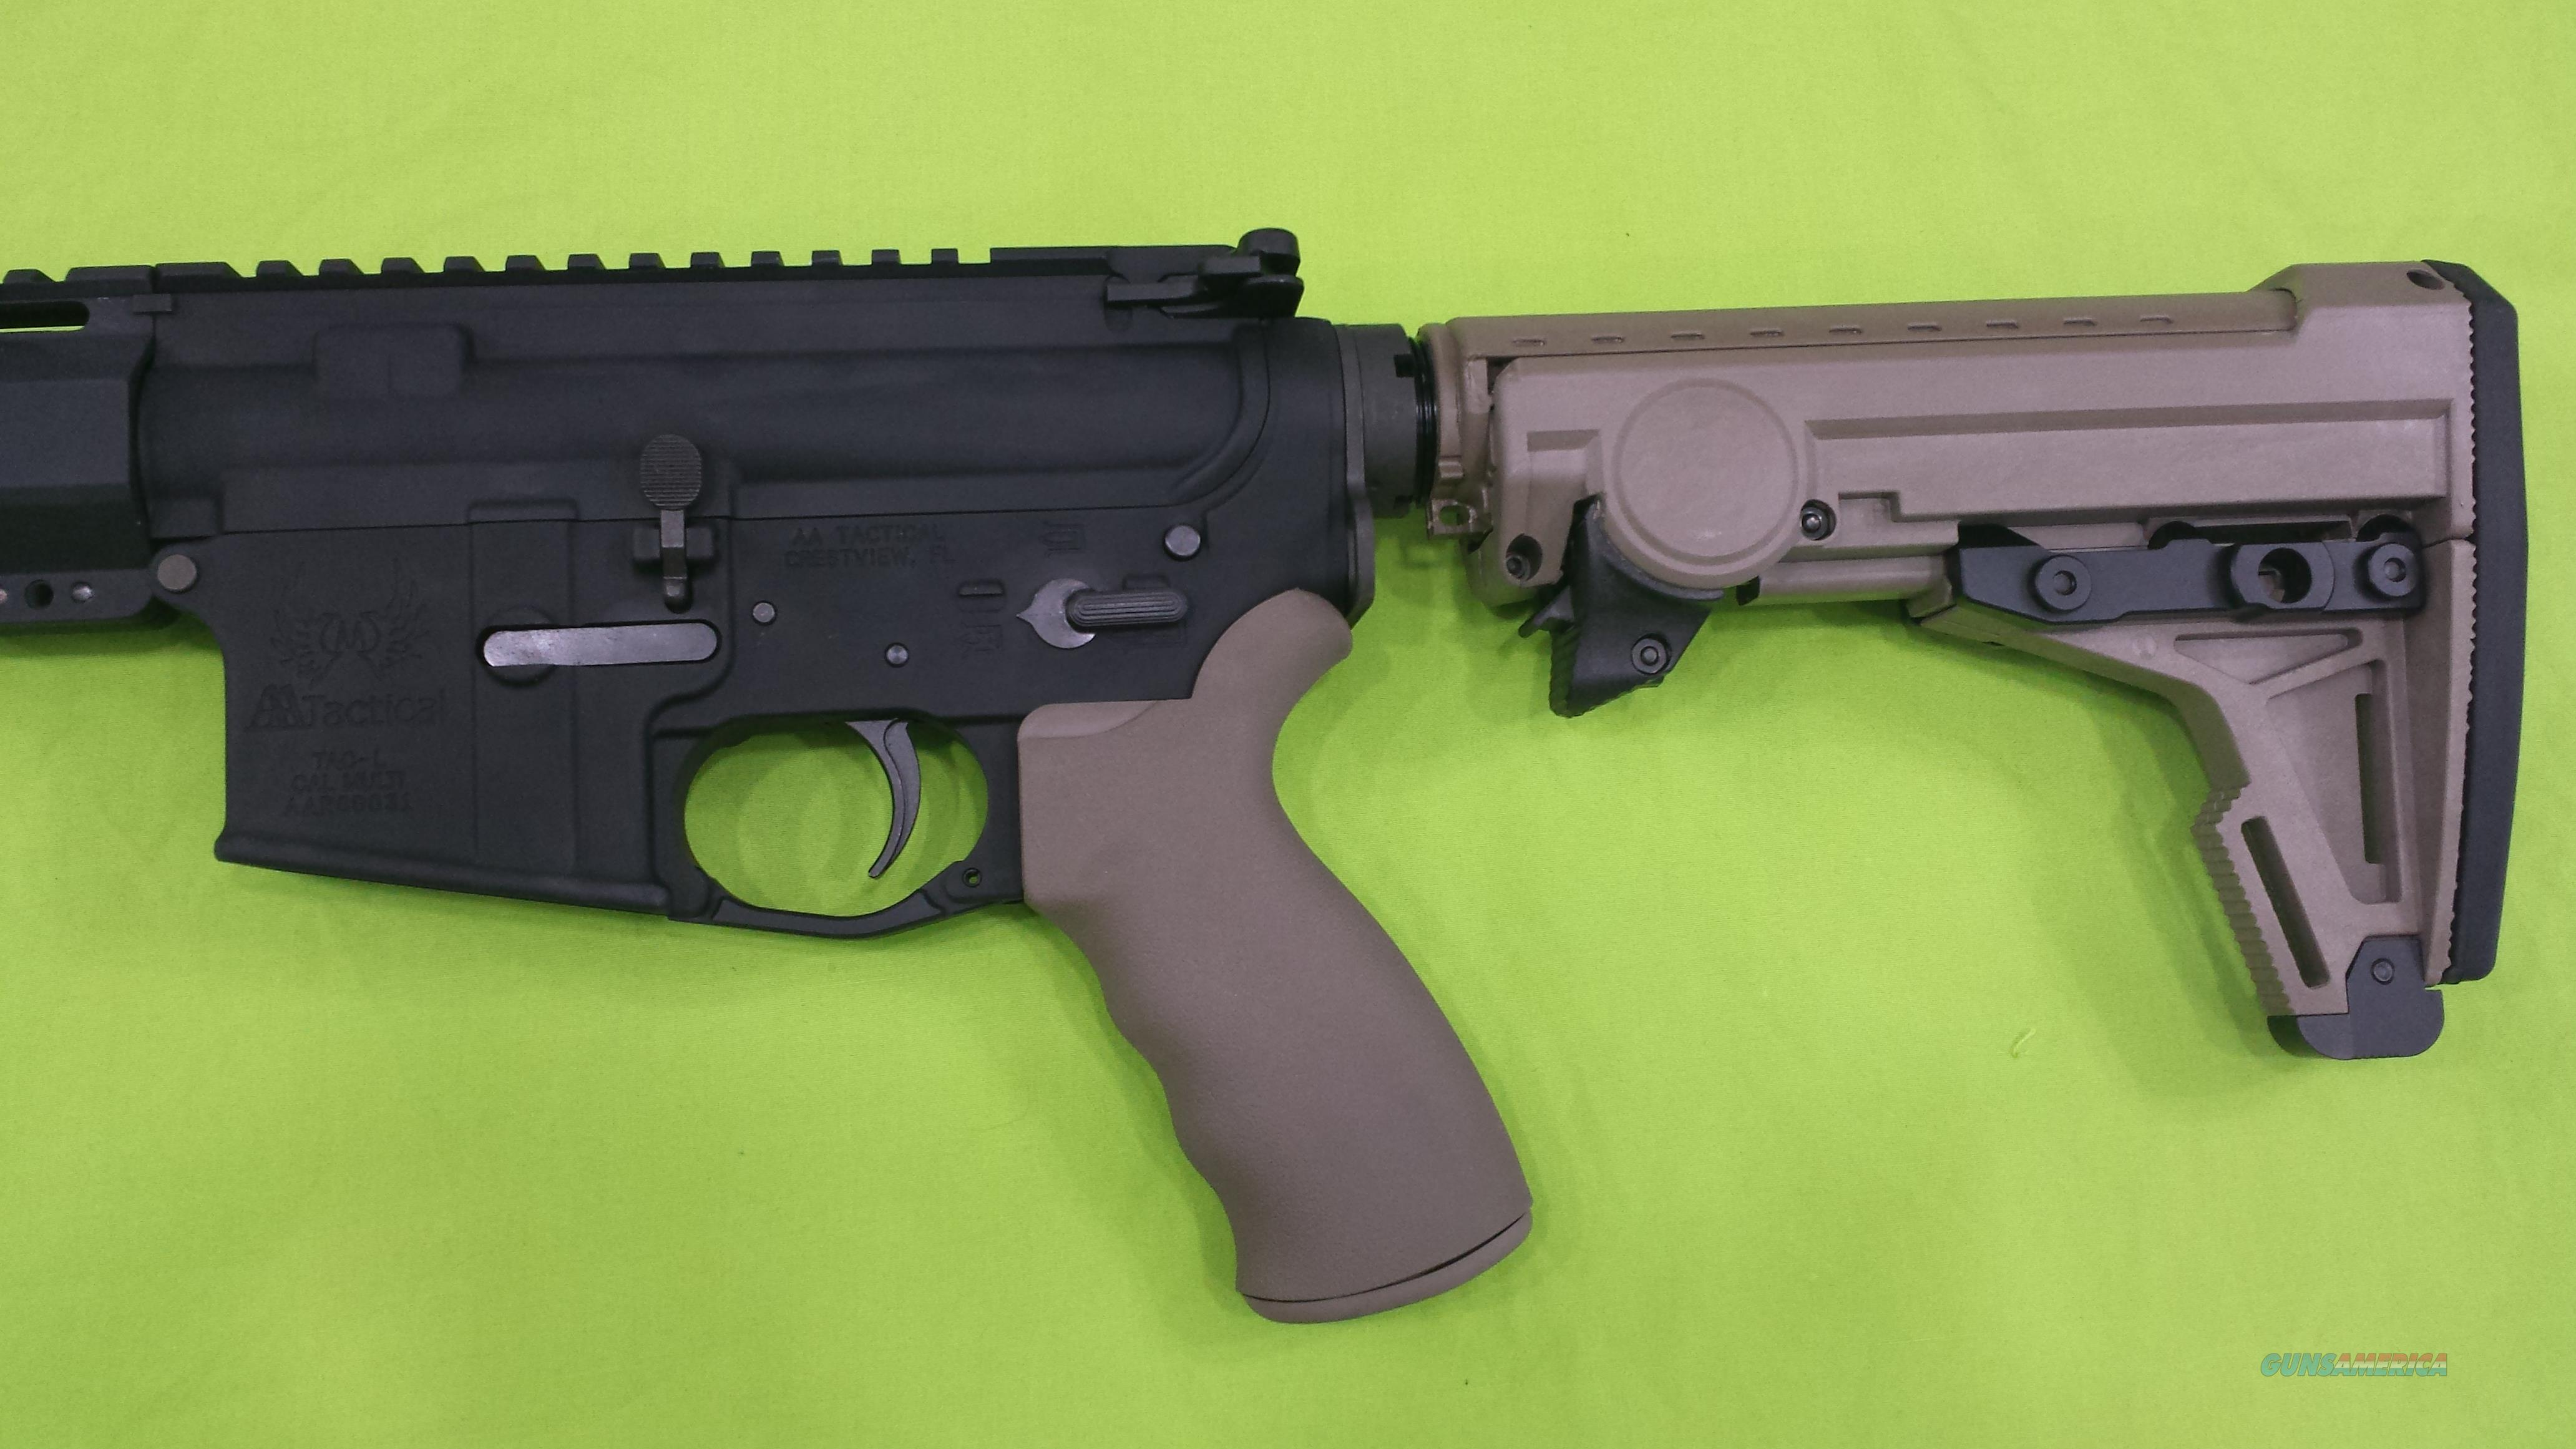 AA TACTICAL MULTI ERGO 8 POS AR 15 FDE COMPLETE LOWER  Guns > Rifles > AR-15 Rifles - Small Manufacturers > Lower Only